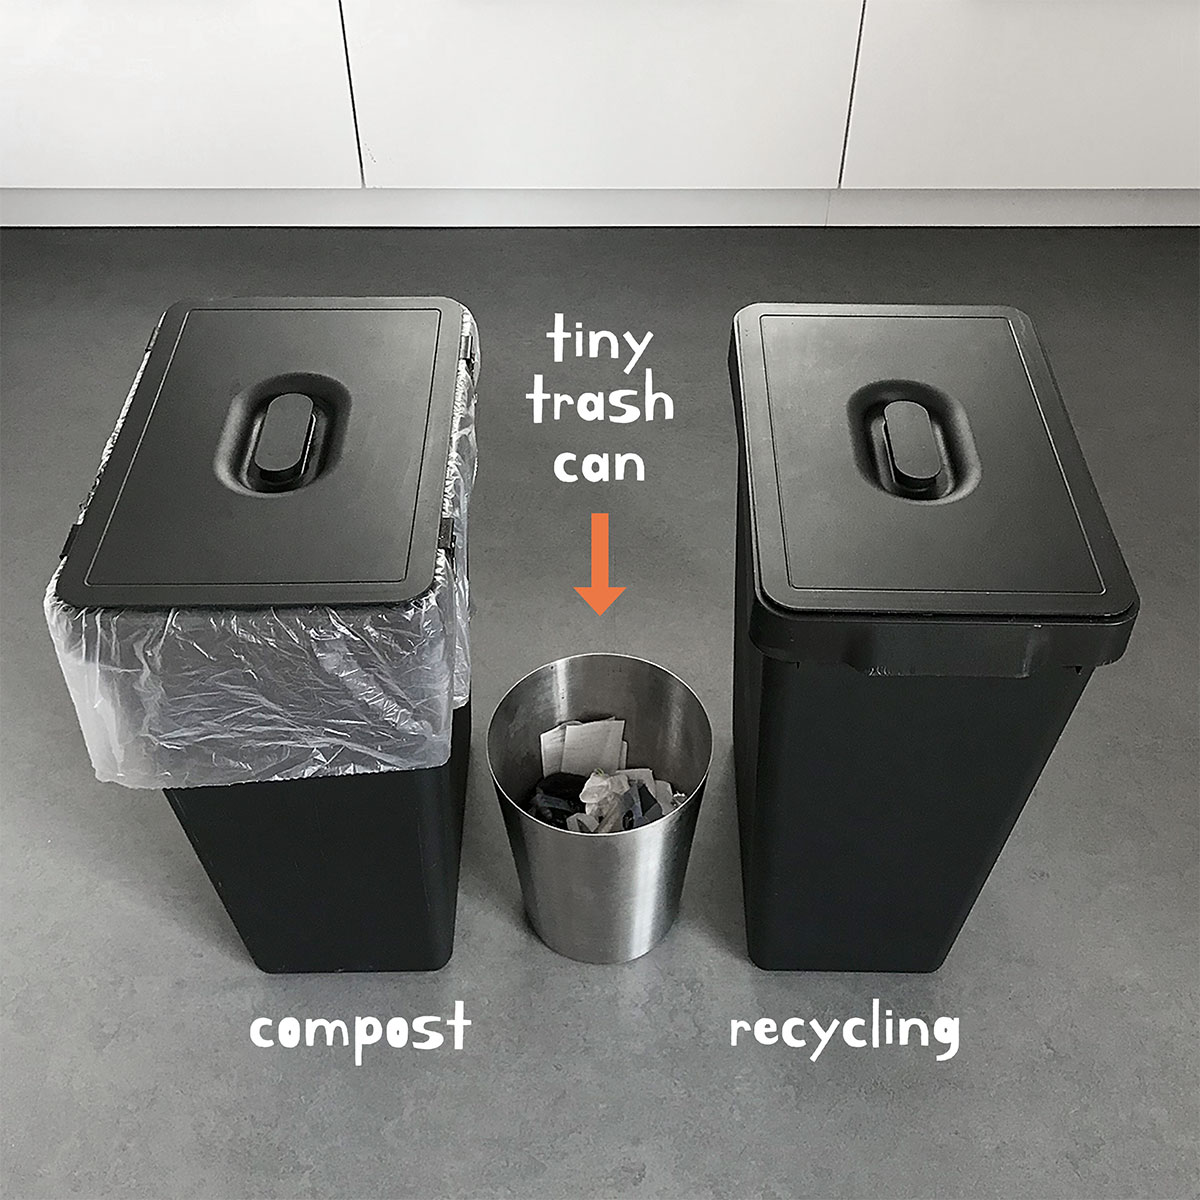 try a tiny trash can